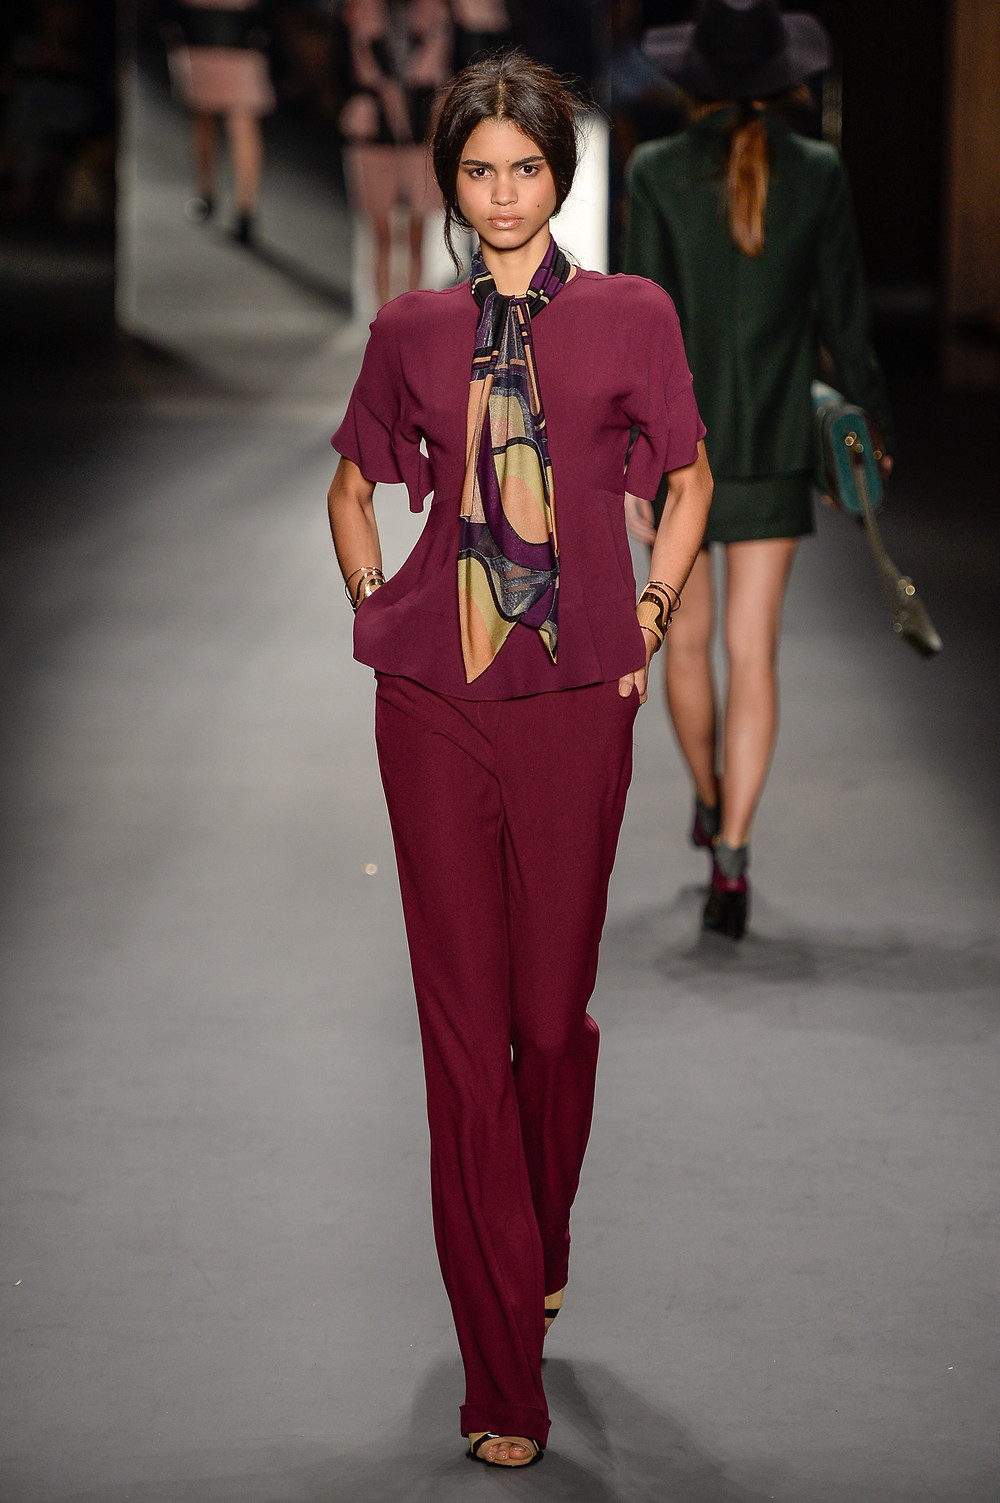 lilly-sarti-spfw-inverno2015-14.jpg